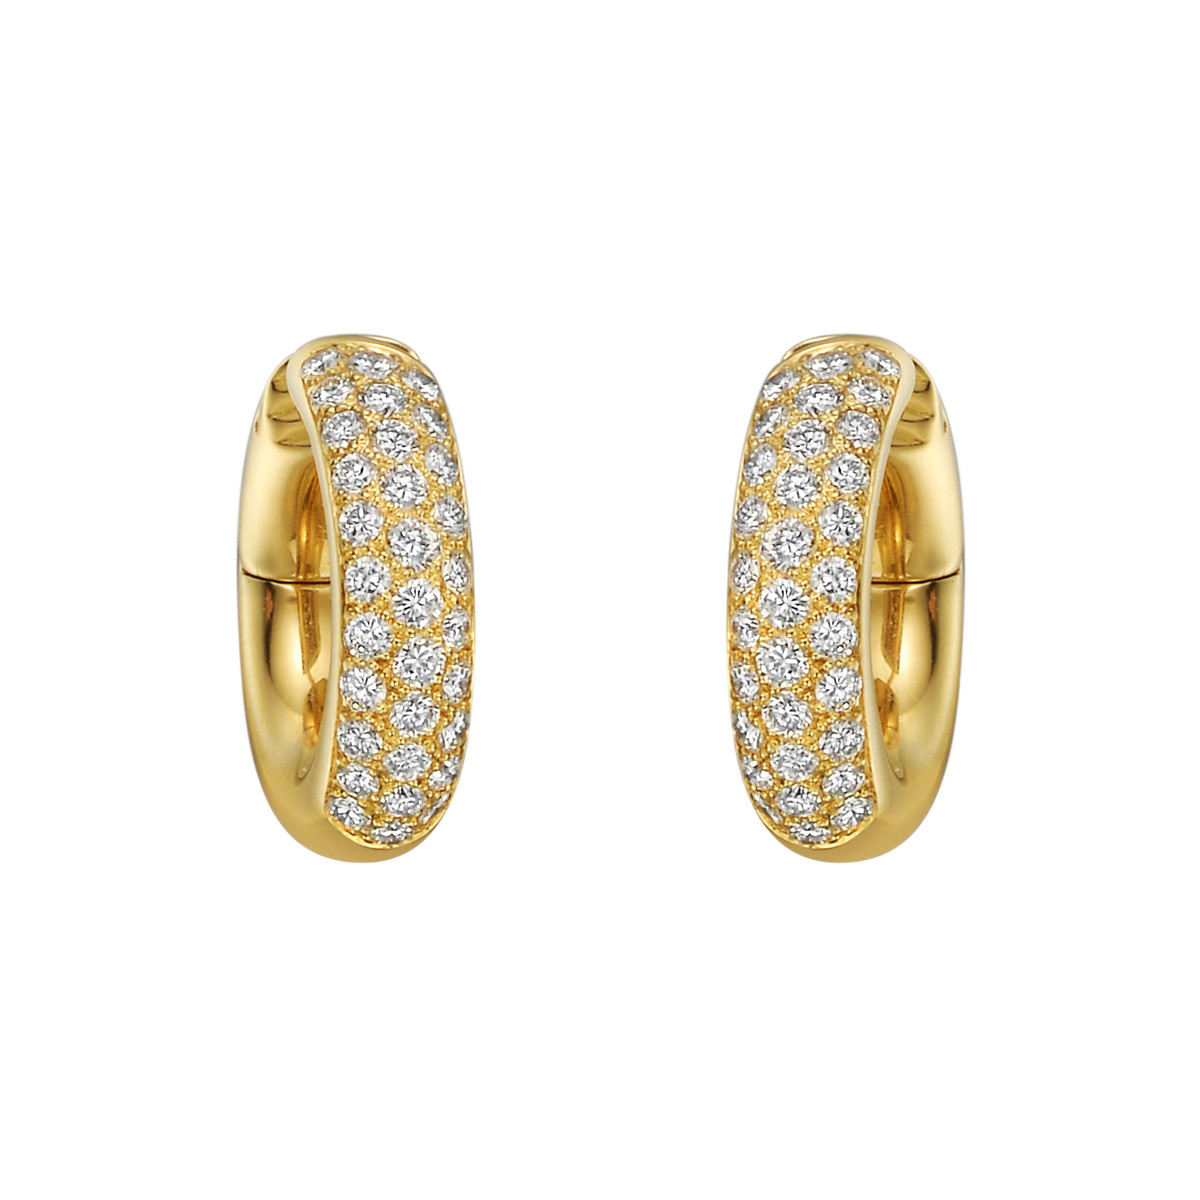 Small 18k Yellow Gold & Diamond Hoop Earrings